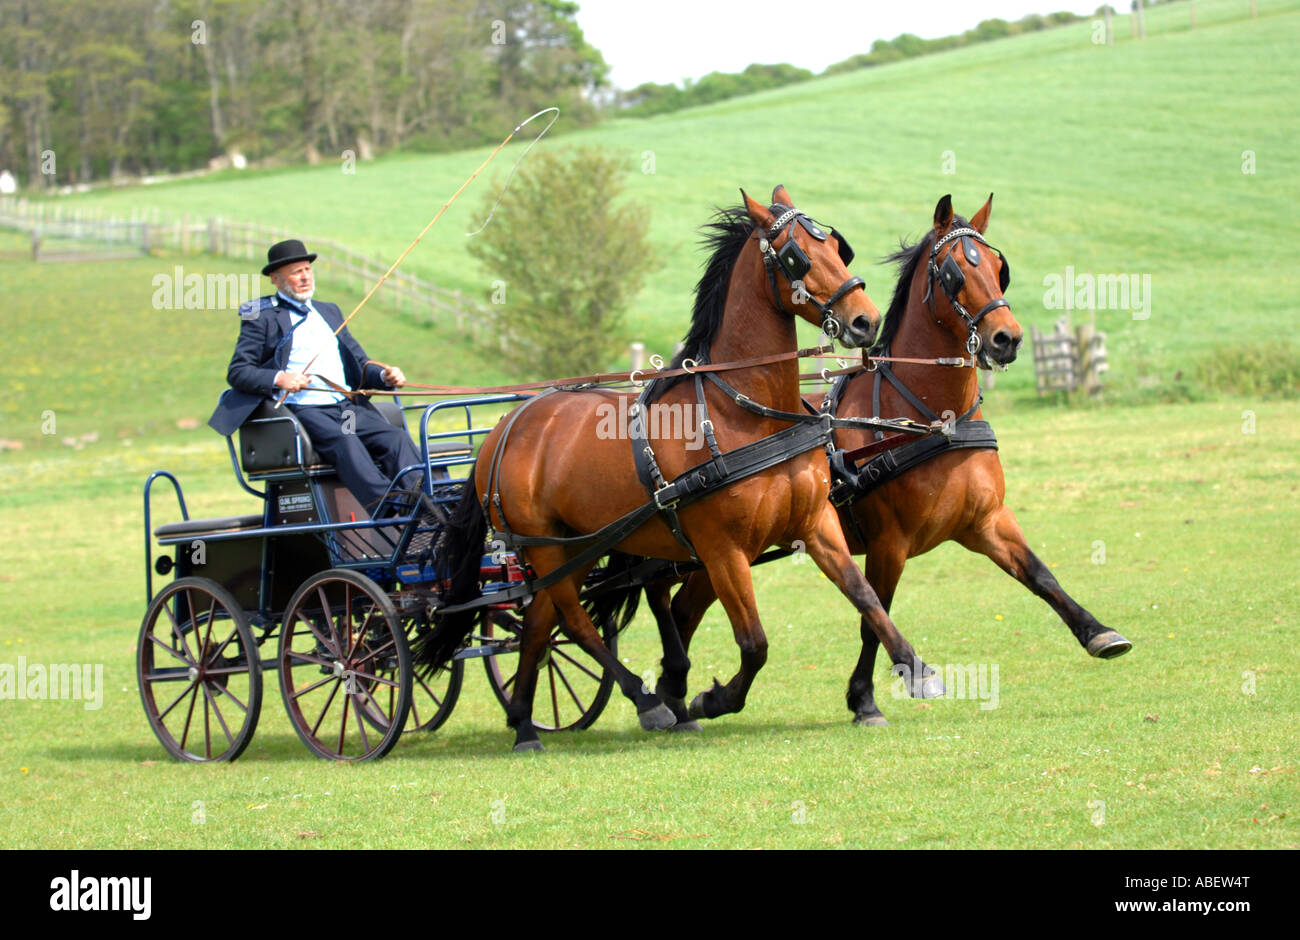 Horse and carriage - Stock Image